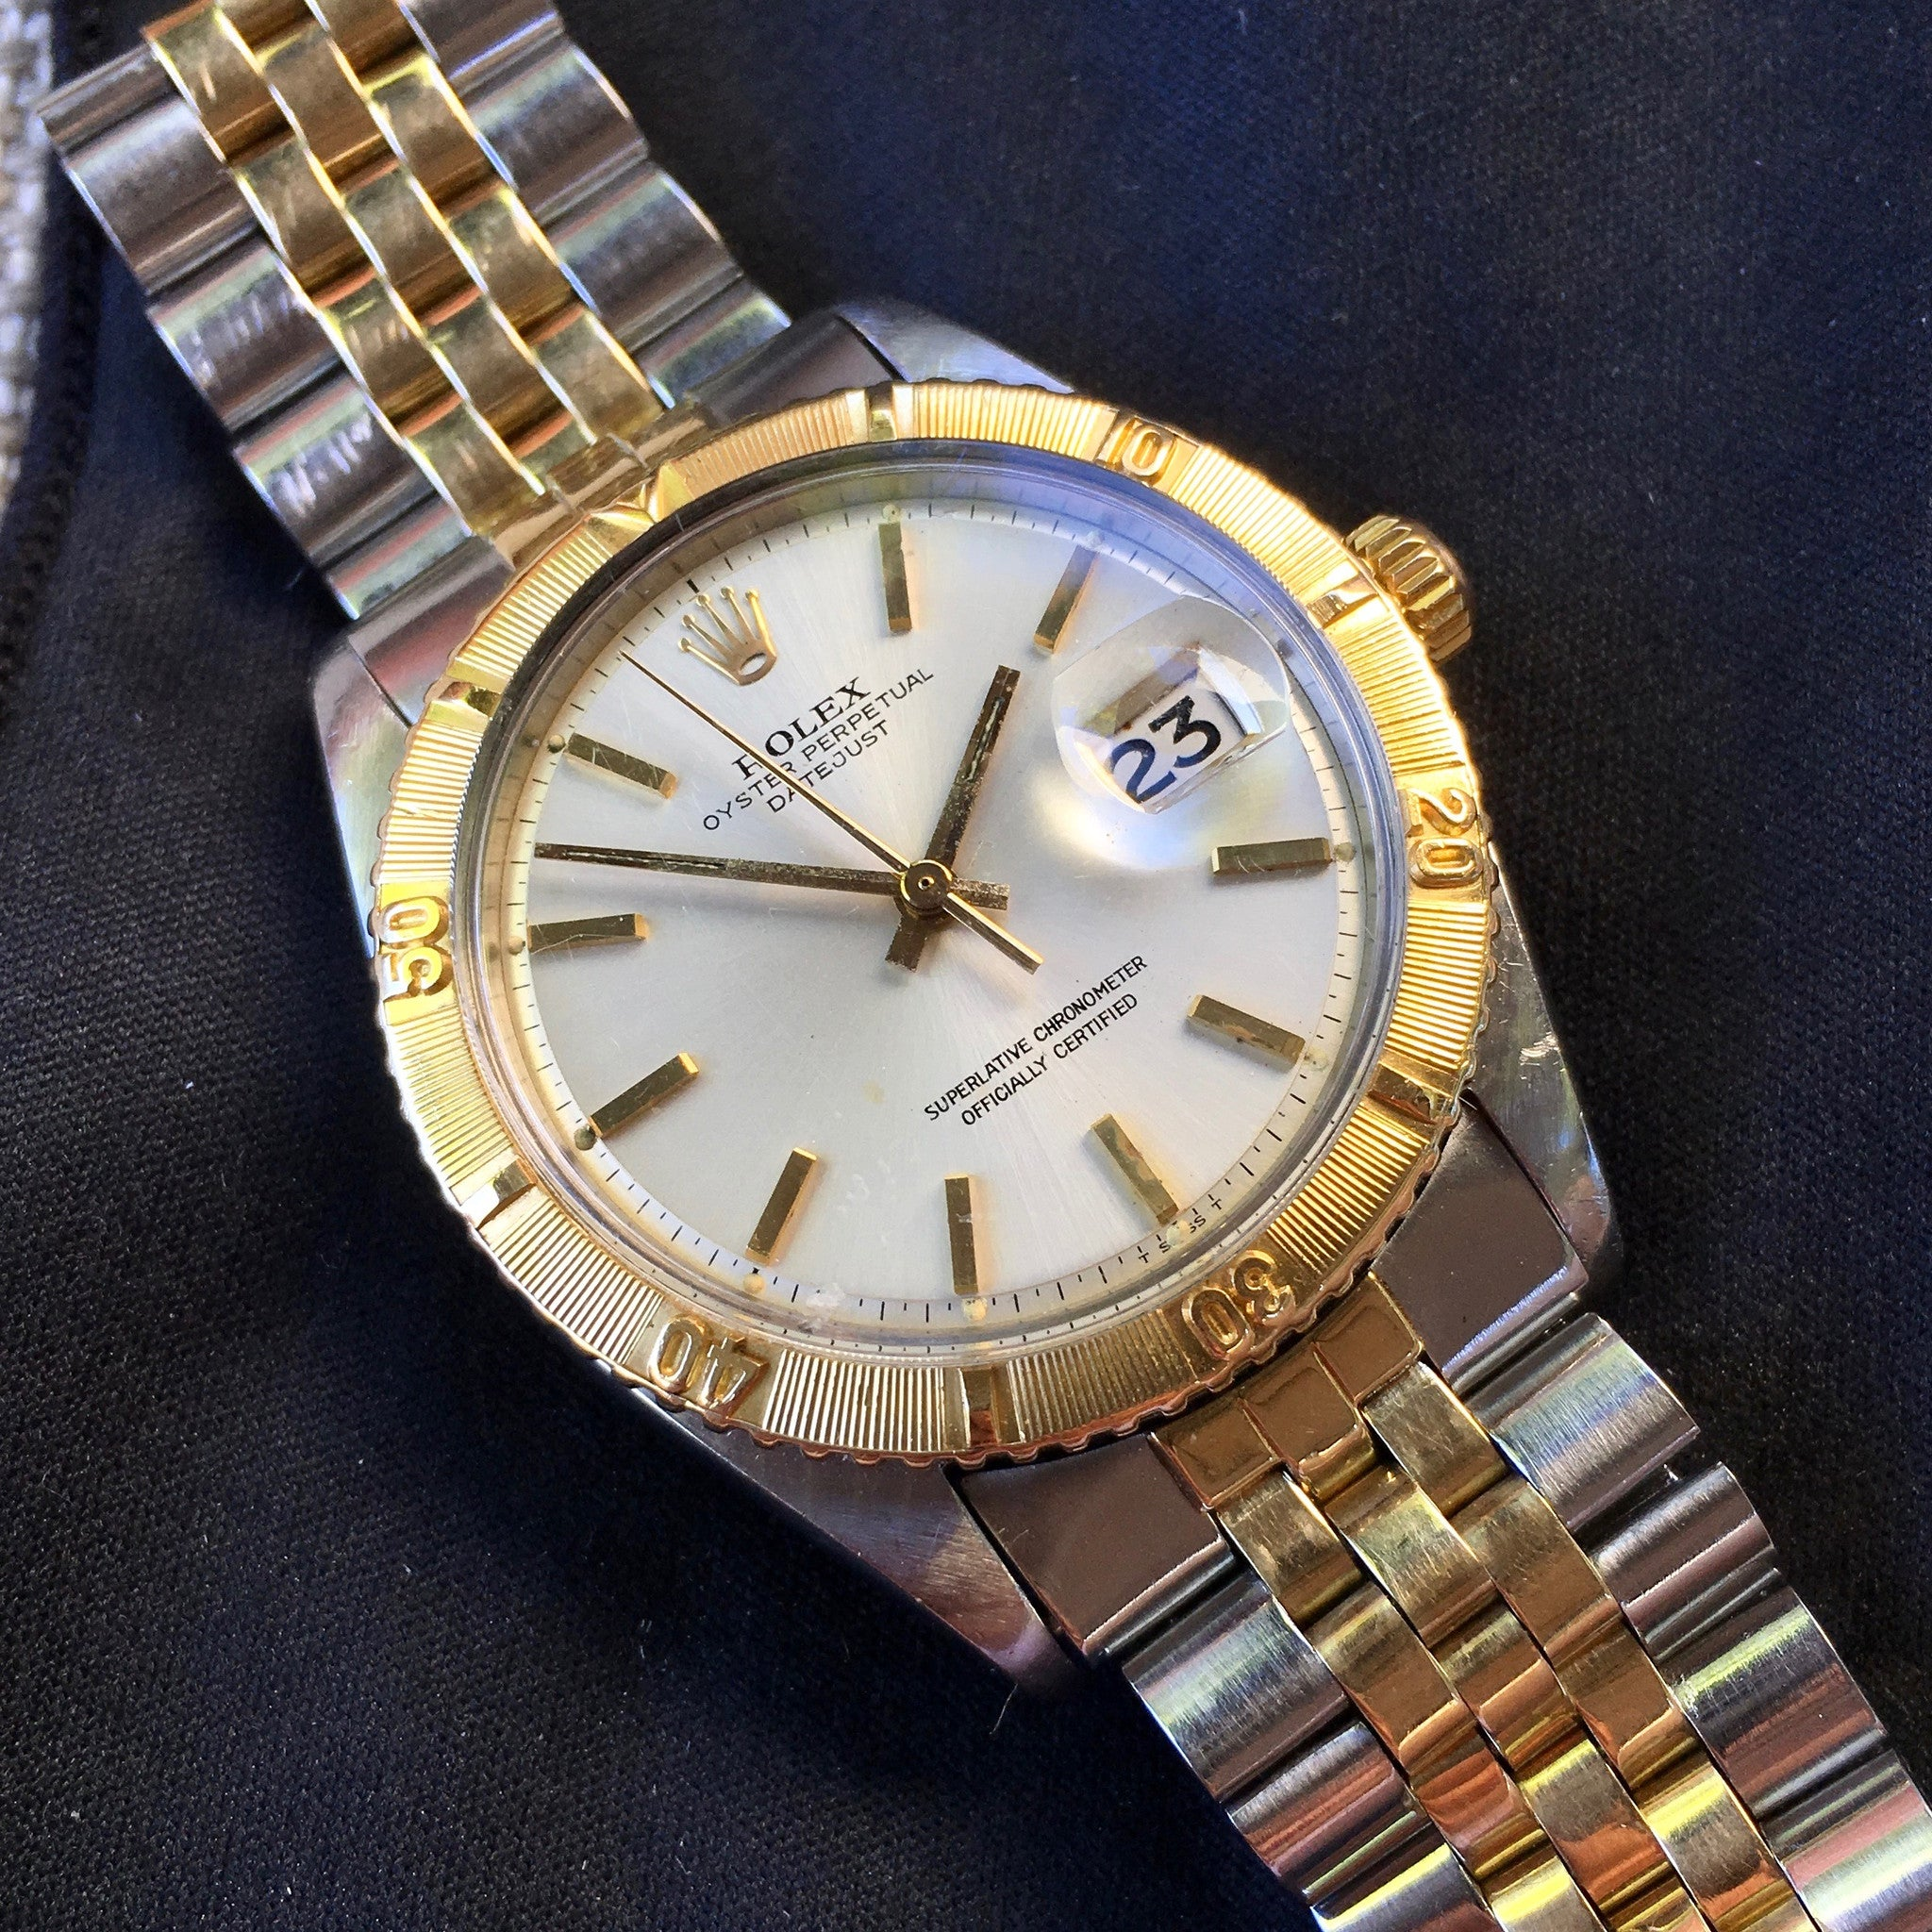 Vintage Rolex Thunderbird Datejust 1625 Two Tone 14K Steel 1968 Cal. 1570 Jubilee Watch - Hashtag Watch Company